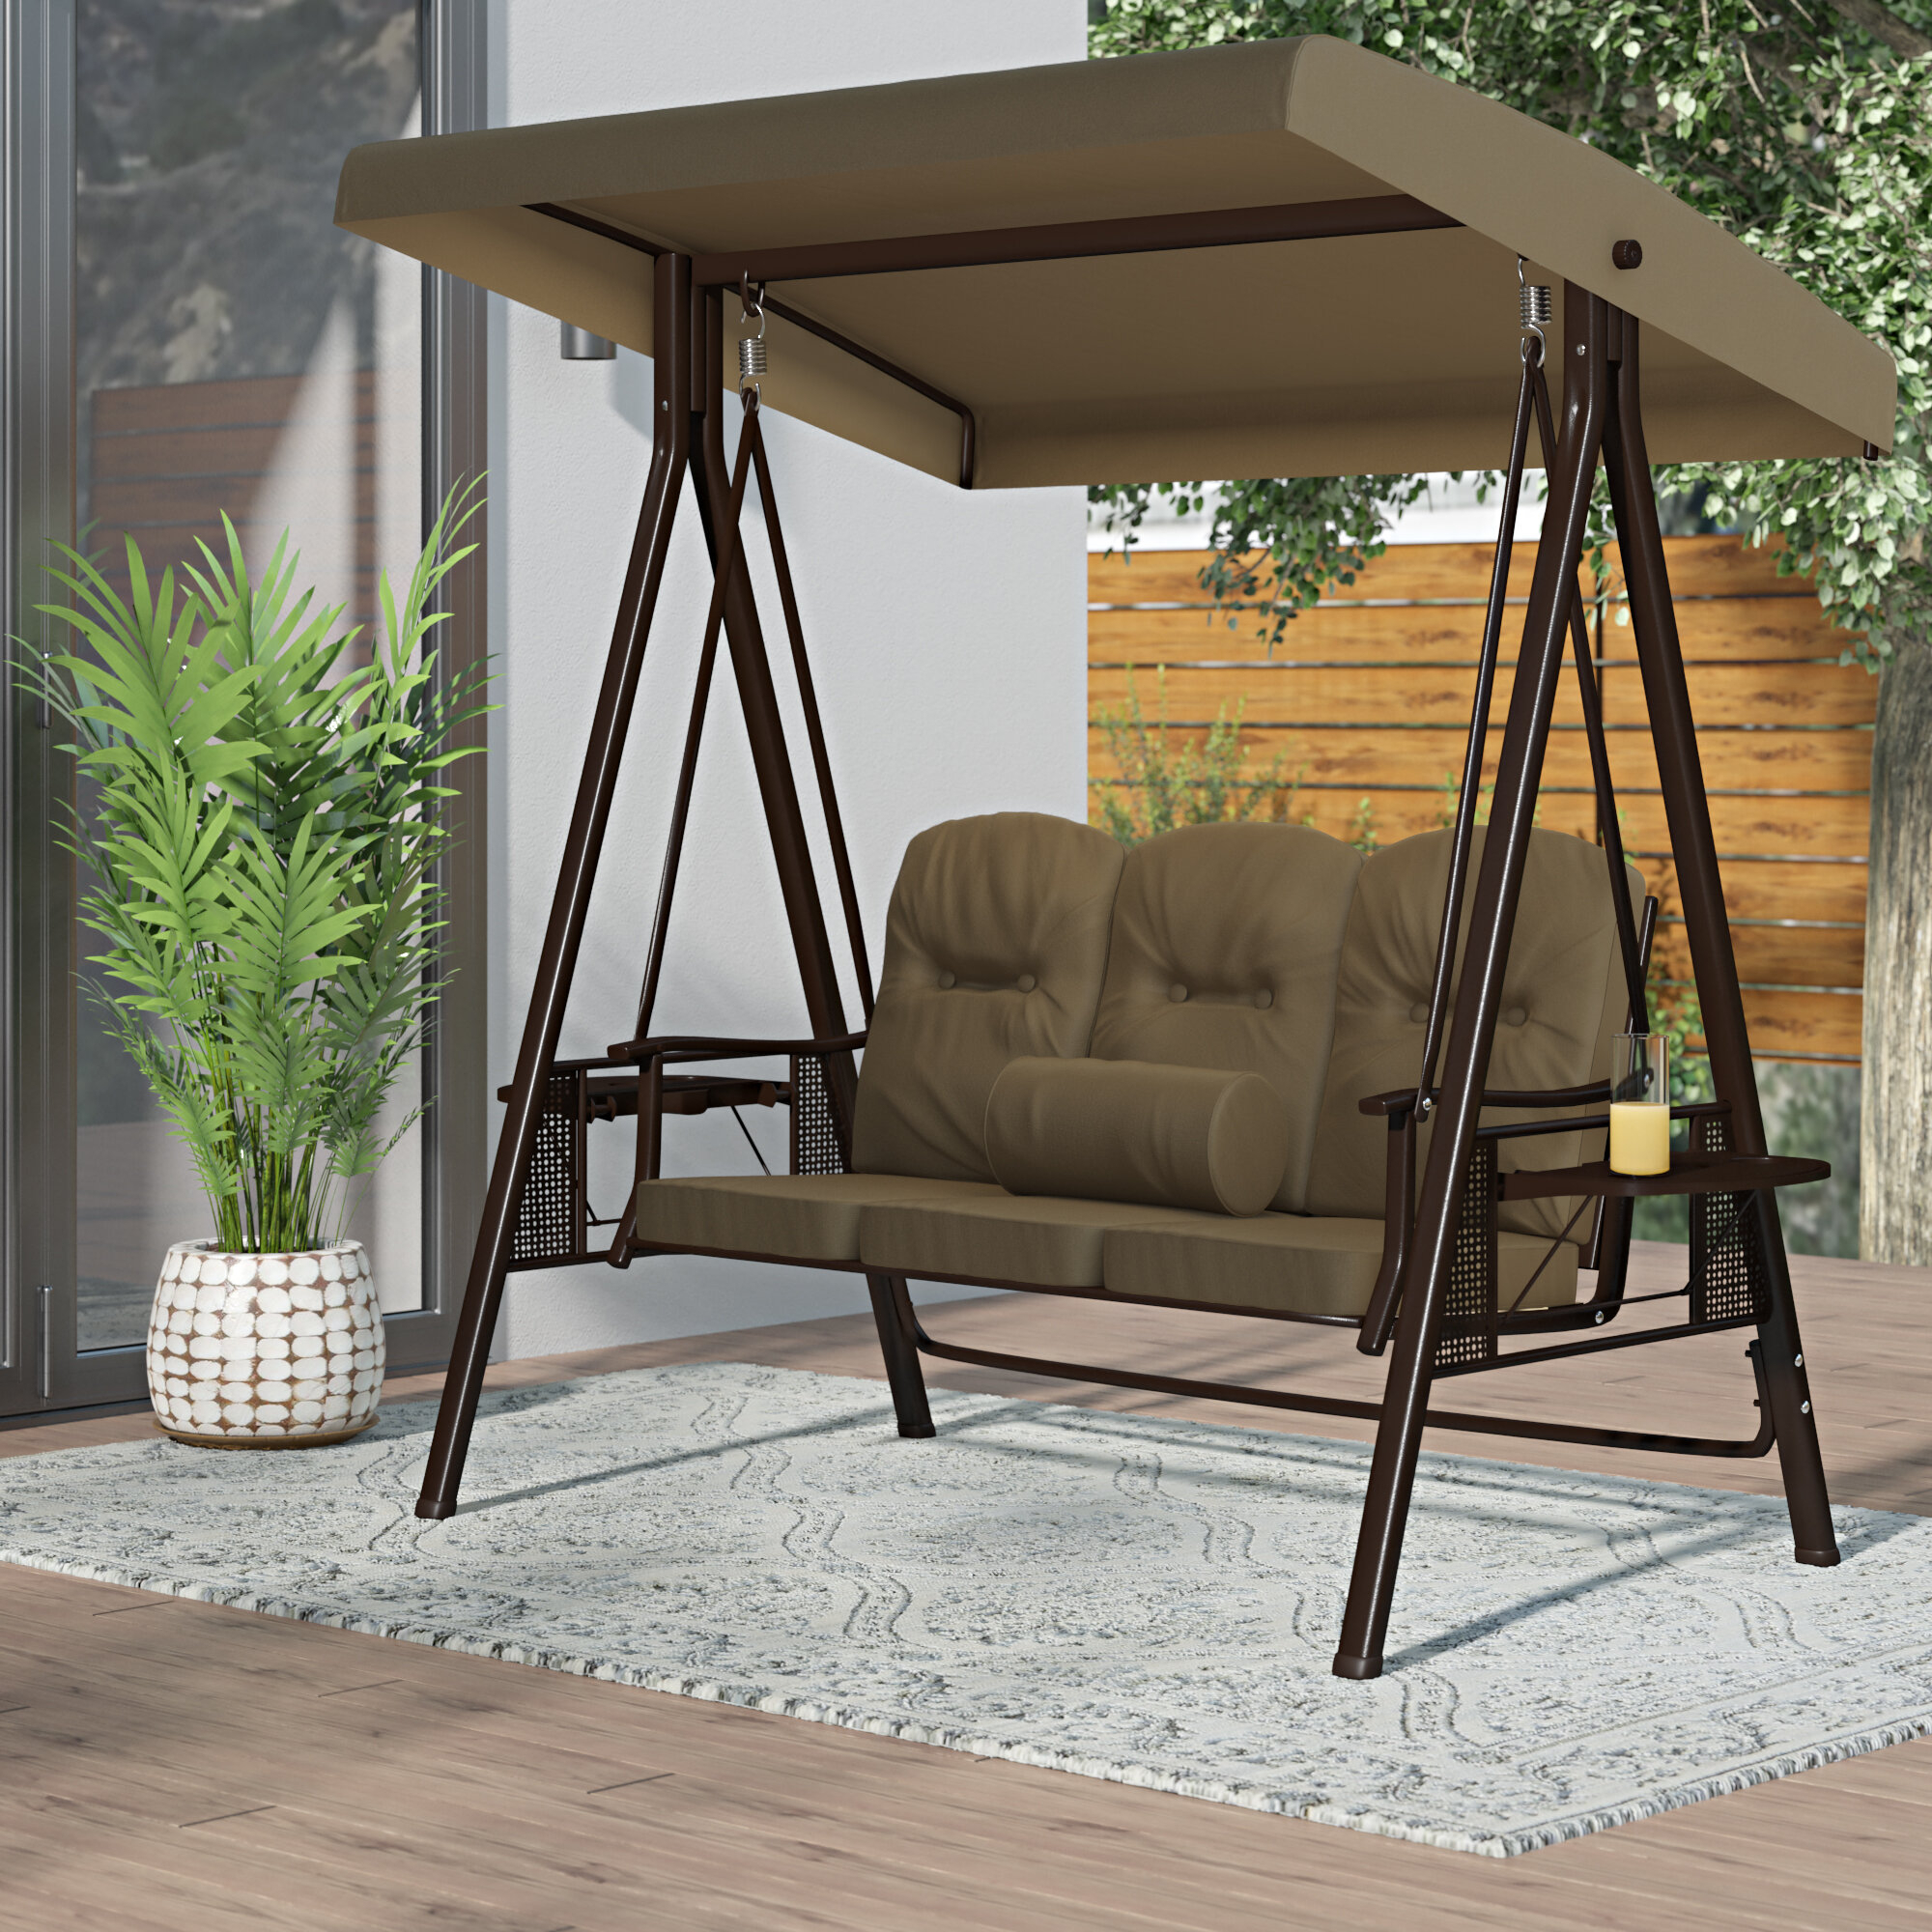 Folkston Outdoor Canopy Porch Swing With Stand With Canopy Patio Porch Swing With Stand (View 4 of 25)